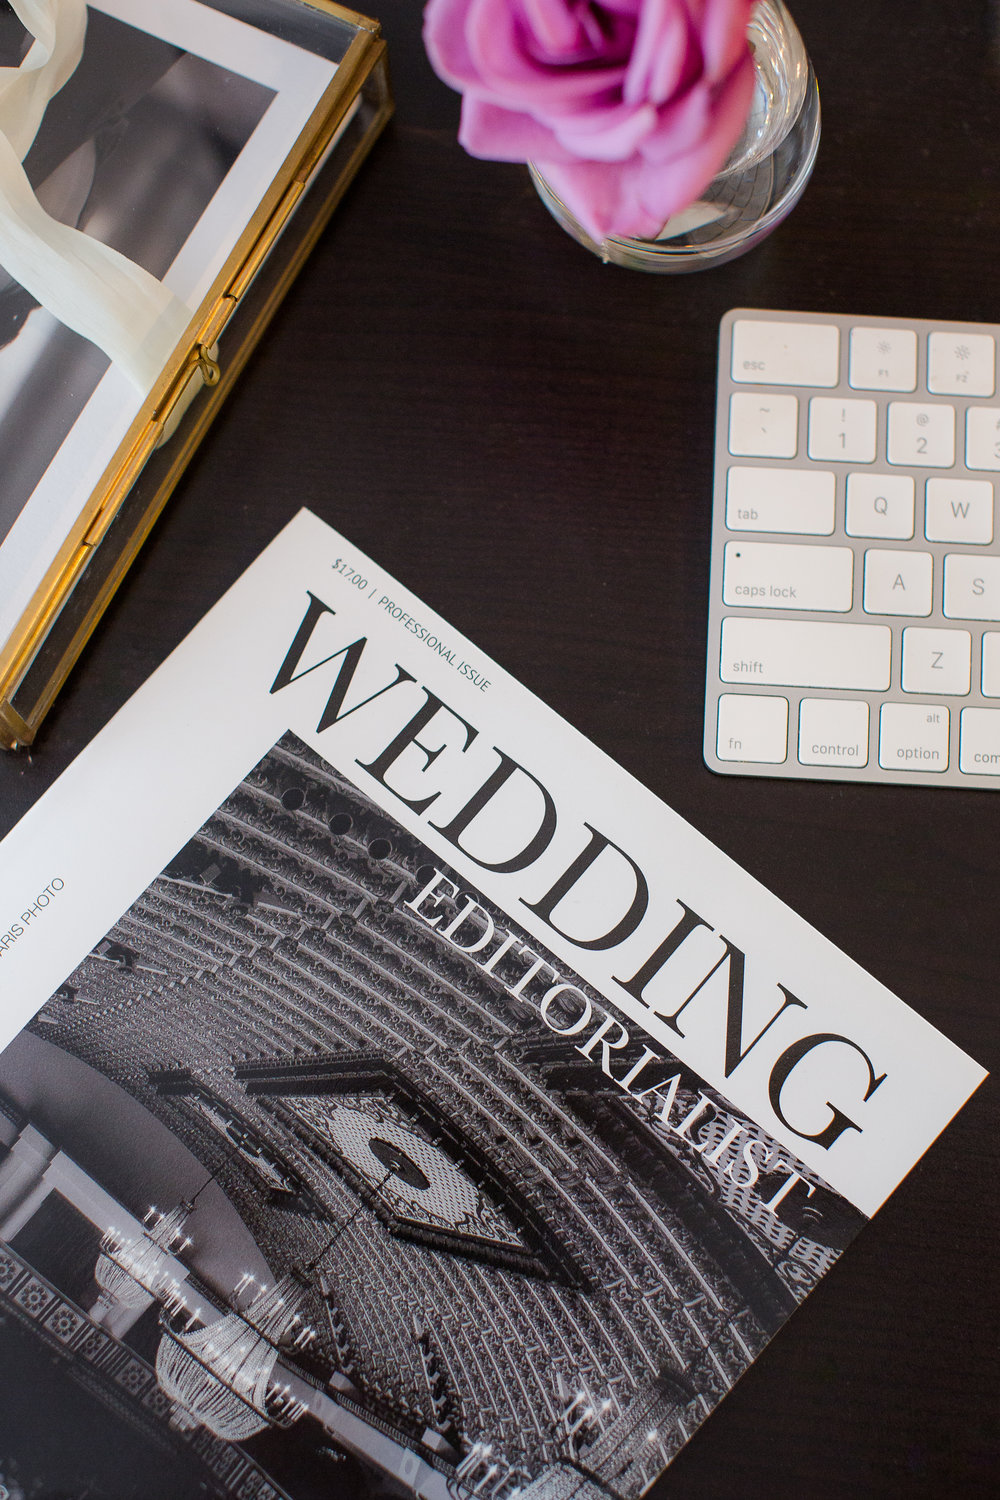 Sumbit your wedding today! An entire wedding magazine dedicated to you from cover to cover.  In print, and available online. Photo courtesy of T and R Stock.  www.weddingeeditorialist.com #weddingmagazine #weddinggift #weddingfavor